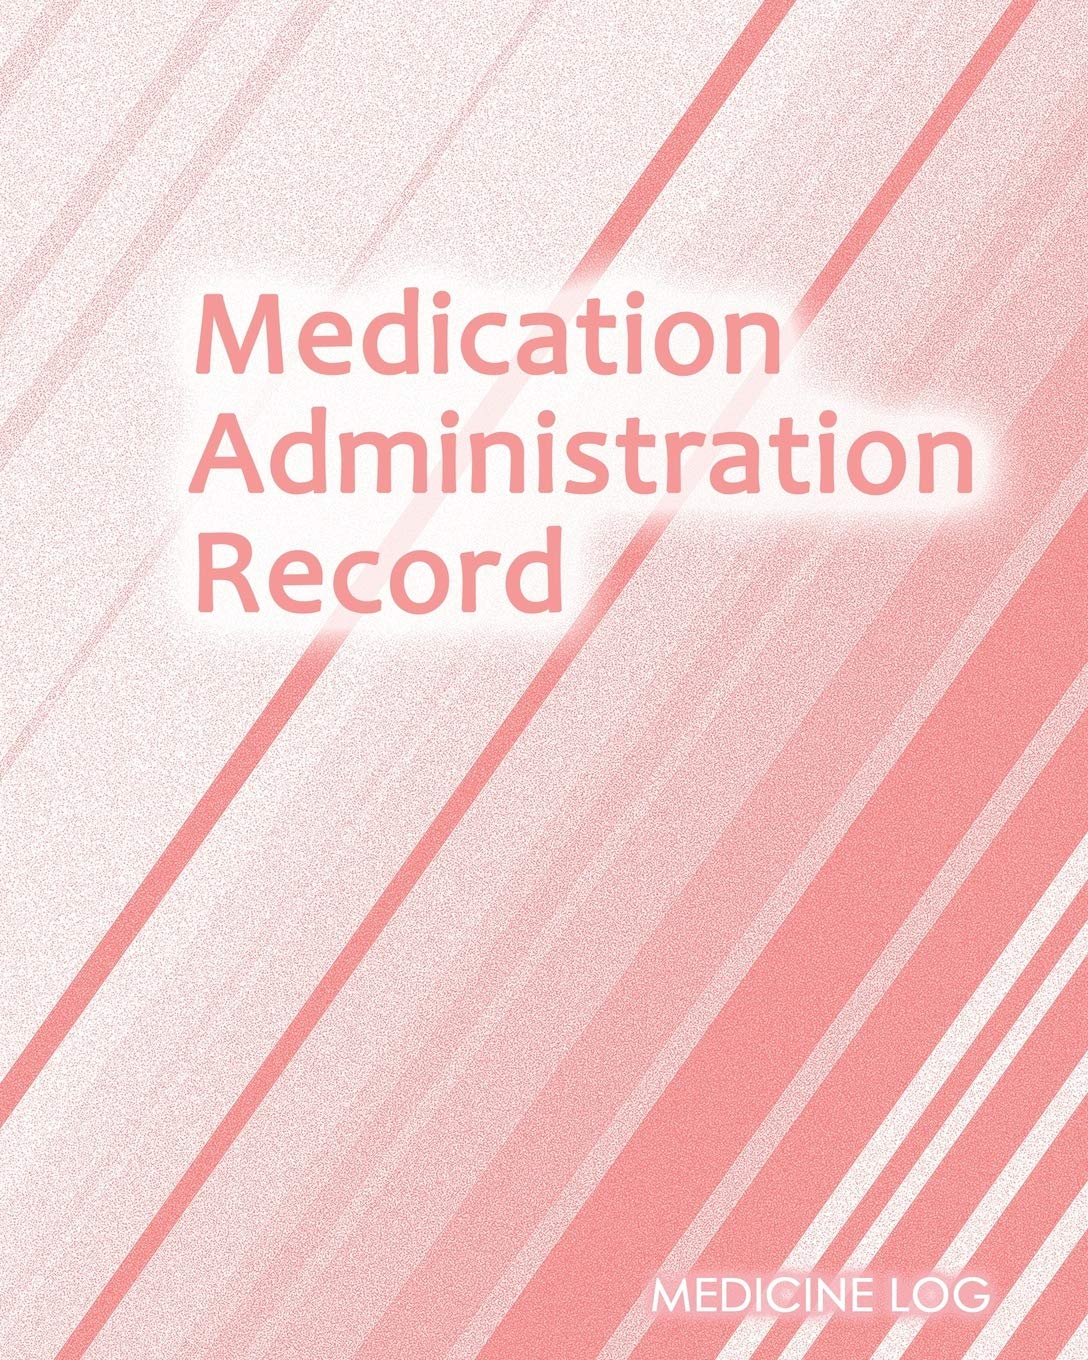 Image OfMedication Administration Record: Daily Medication Tracker Log Book: LARGE PRINT Daily Medicine Reminder Tracking. Practic...